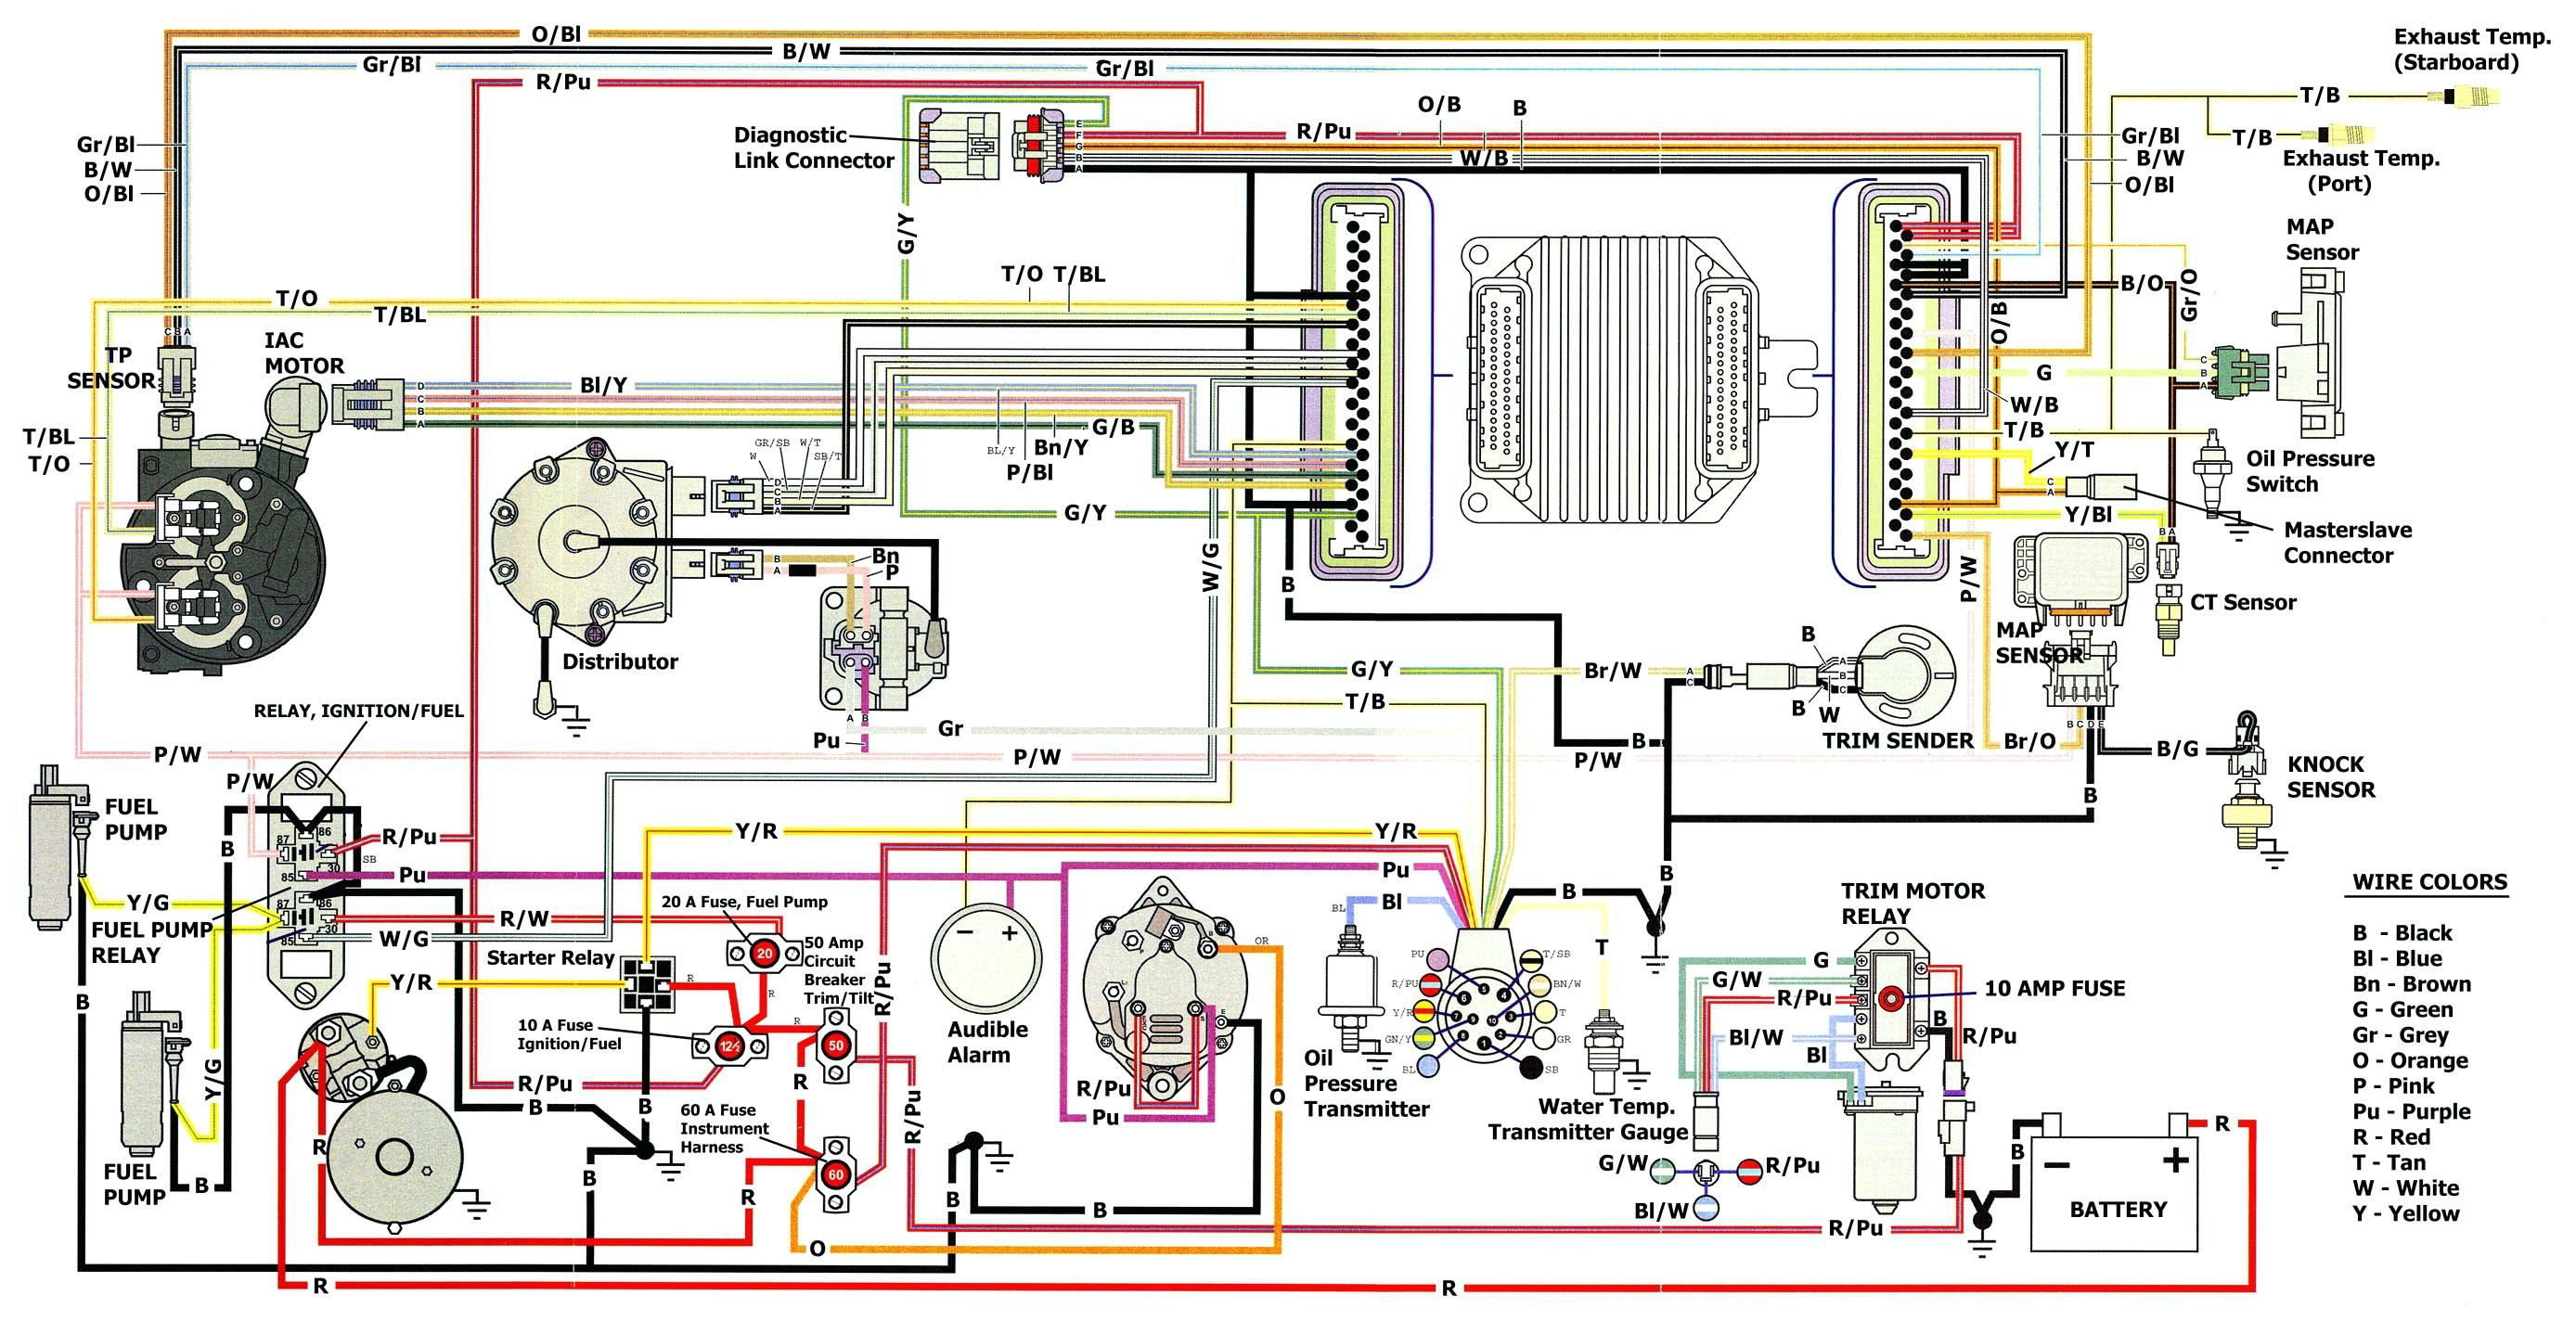 Volvo V70 Wiring Diagram